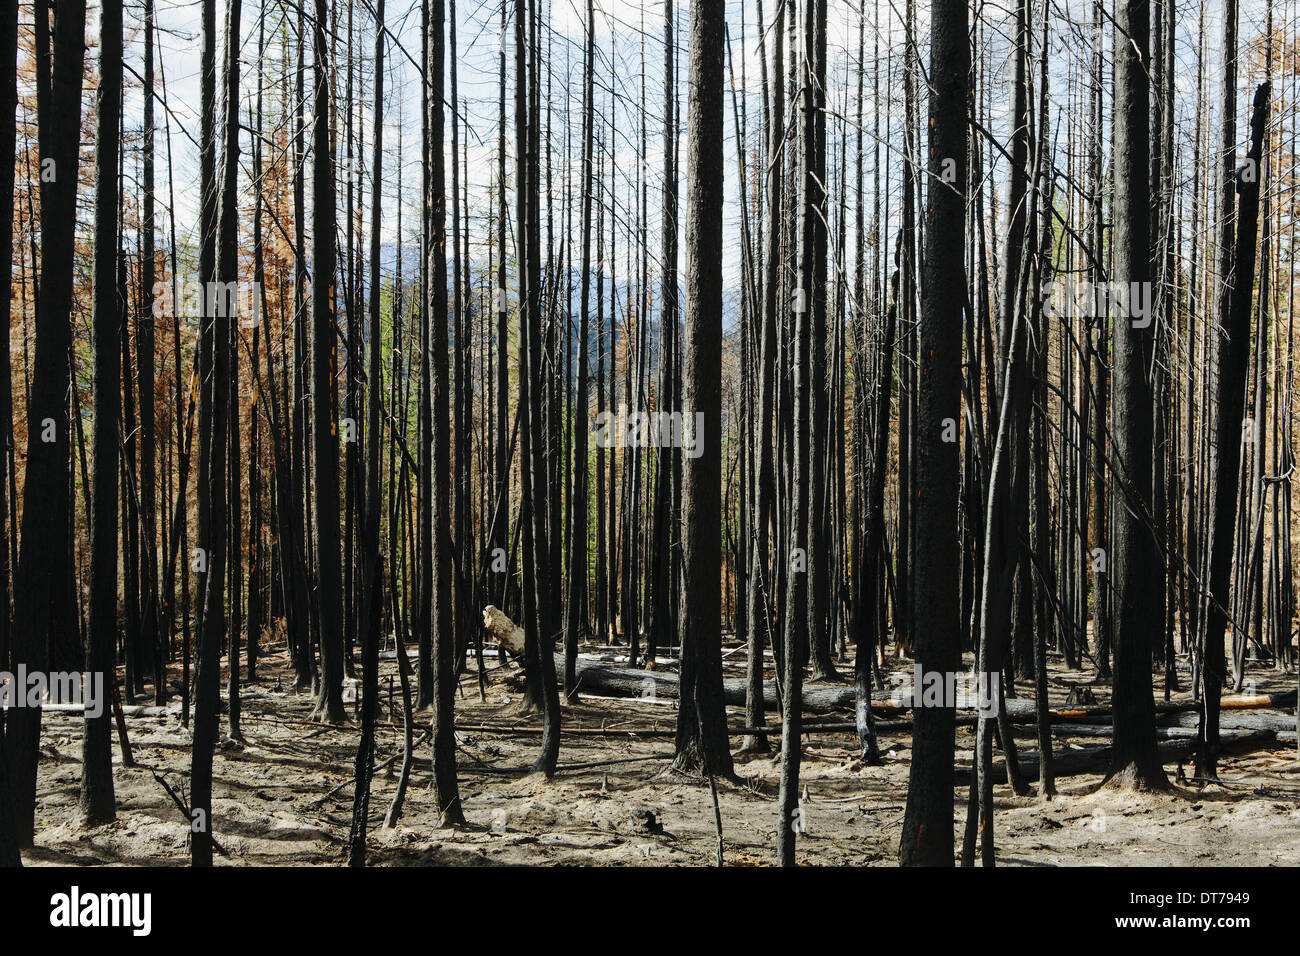 Fire damaged trees and forest (from the 2012 Table Mountain Fire), Okanogan-Wenatchee NF, near Blewett Pass - Stock Image